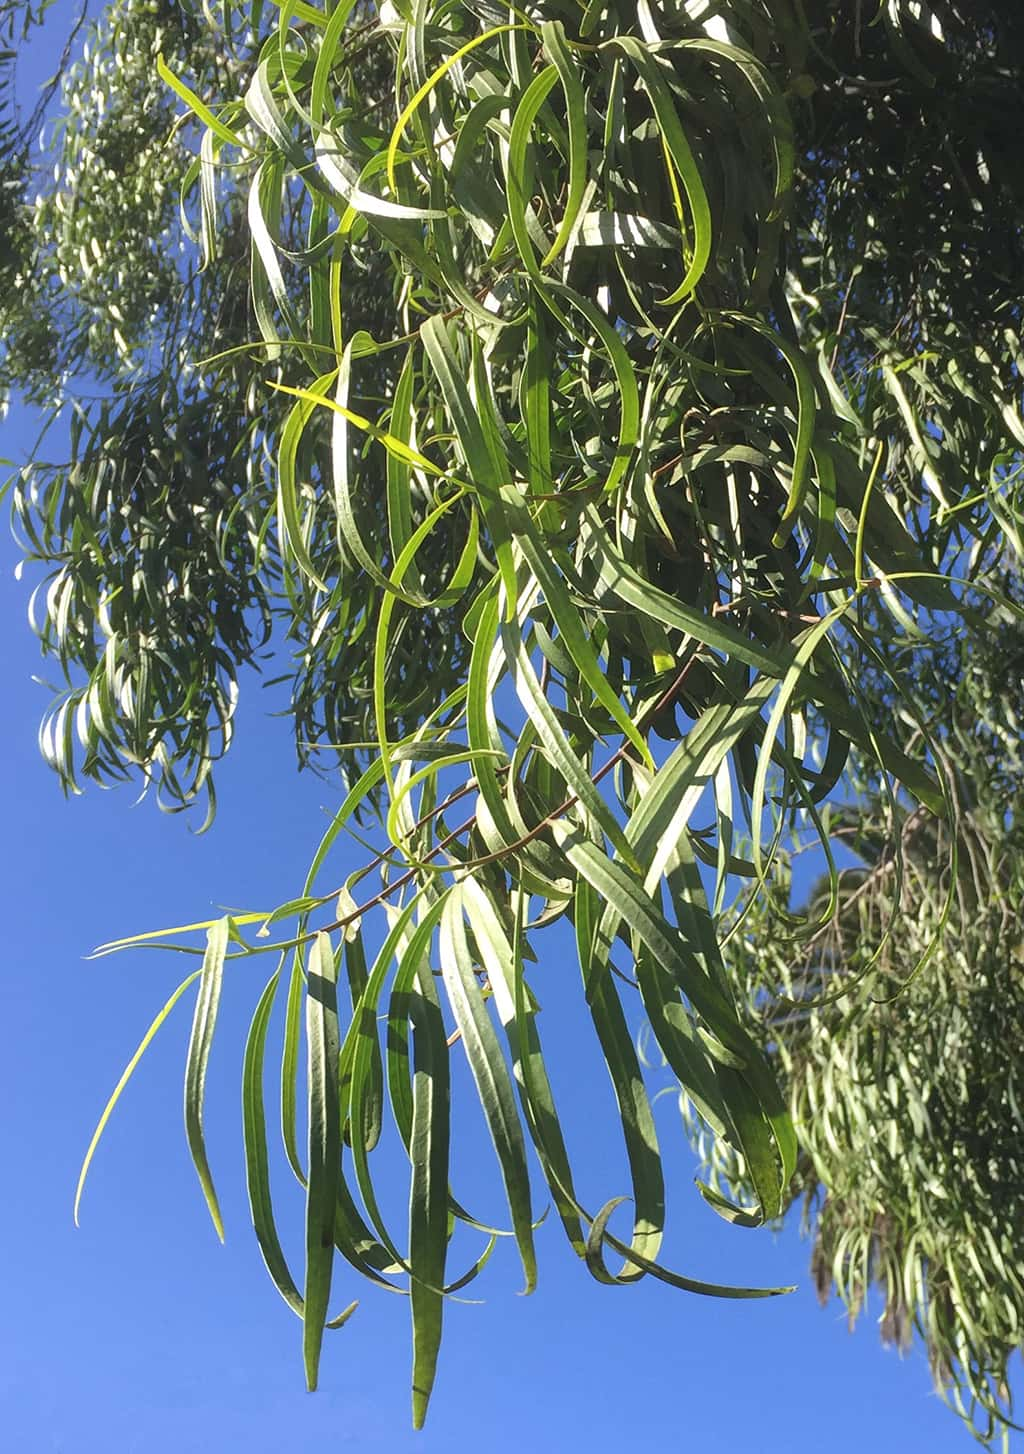 Australian Willow leaves by David Gress